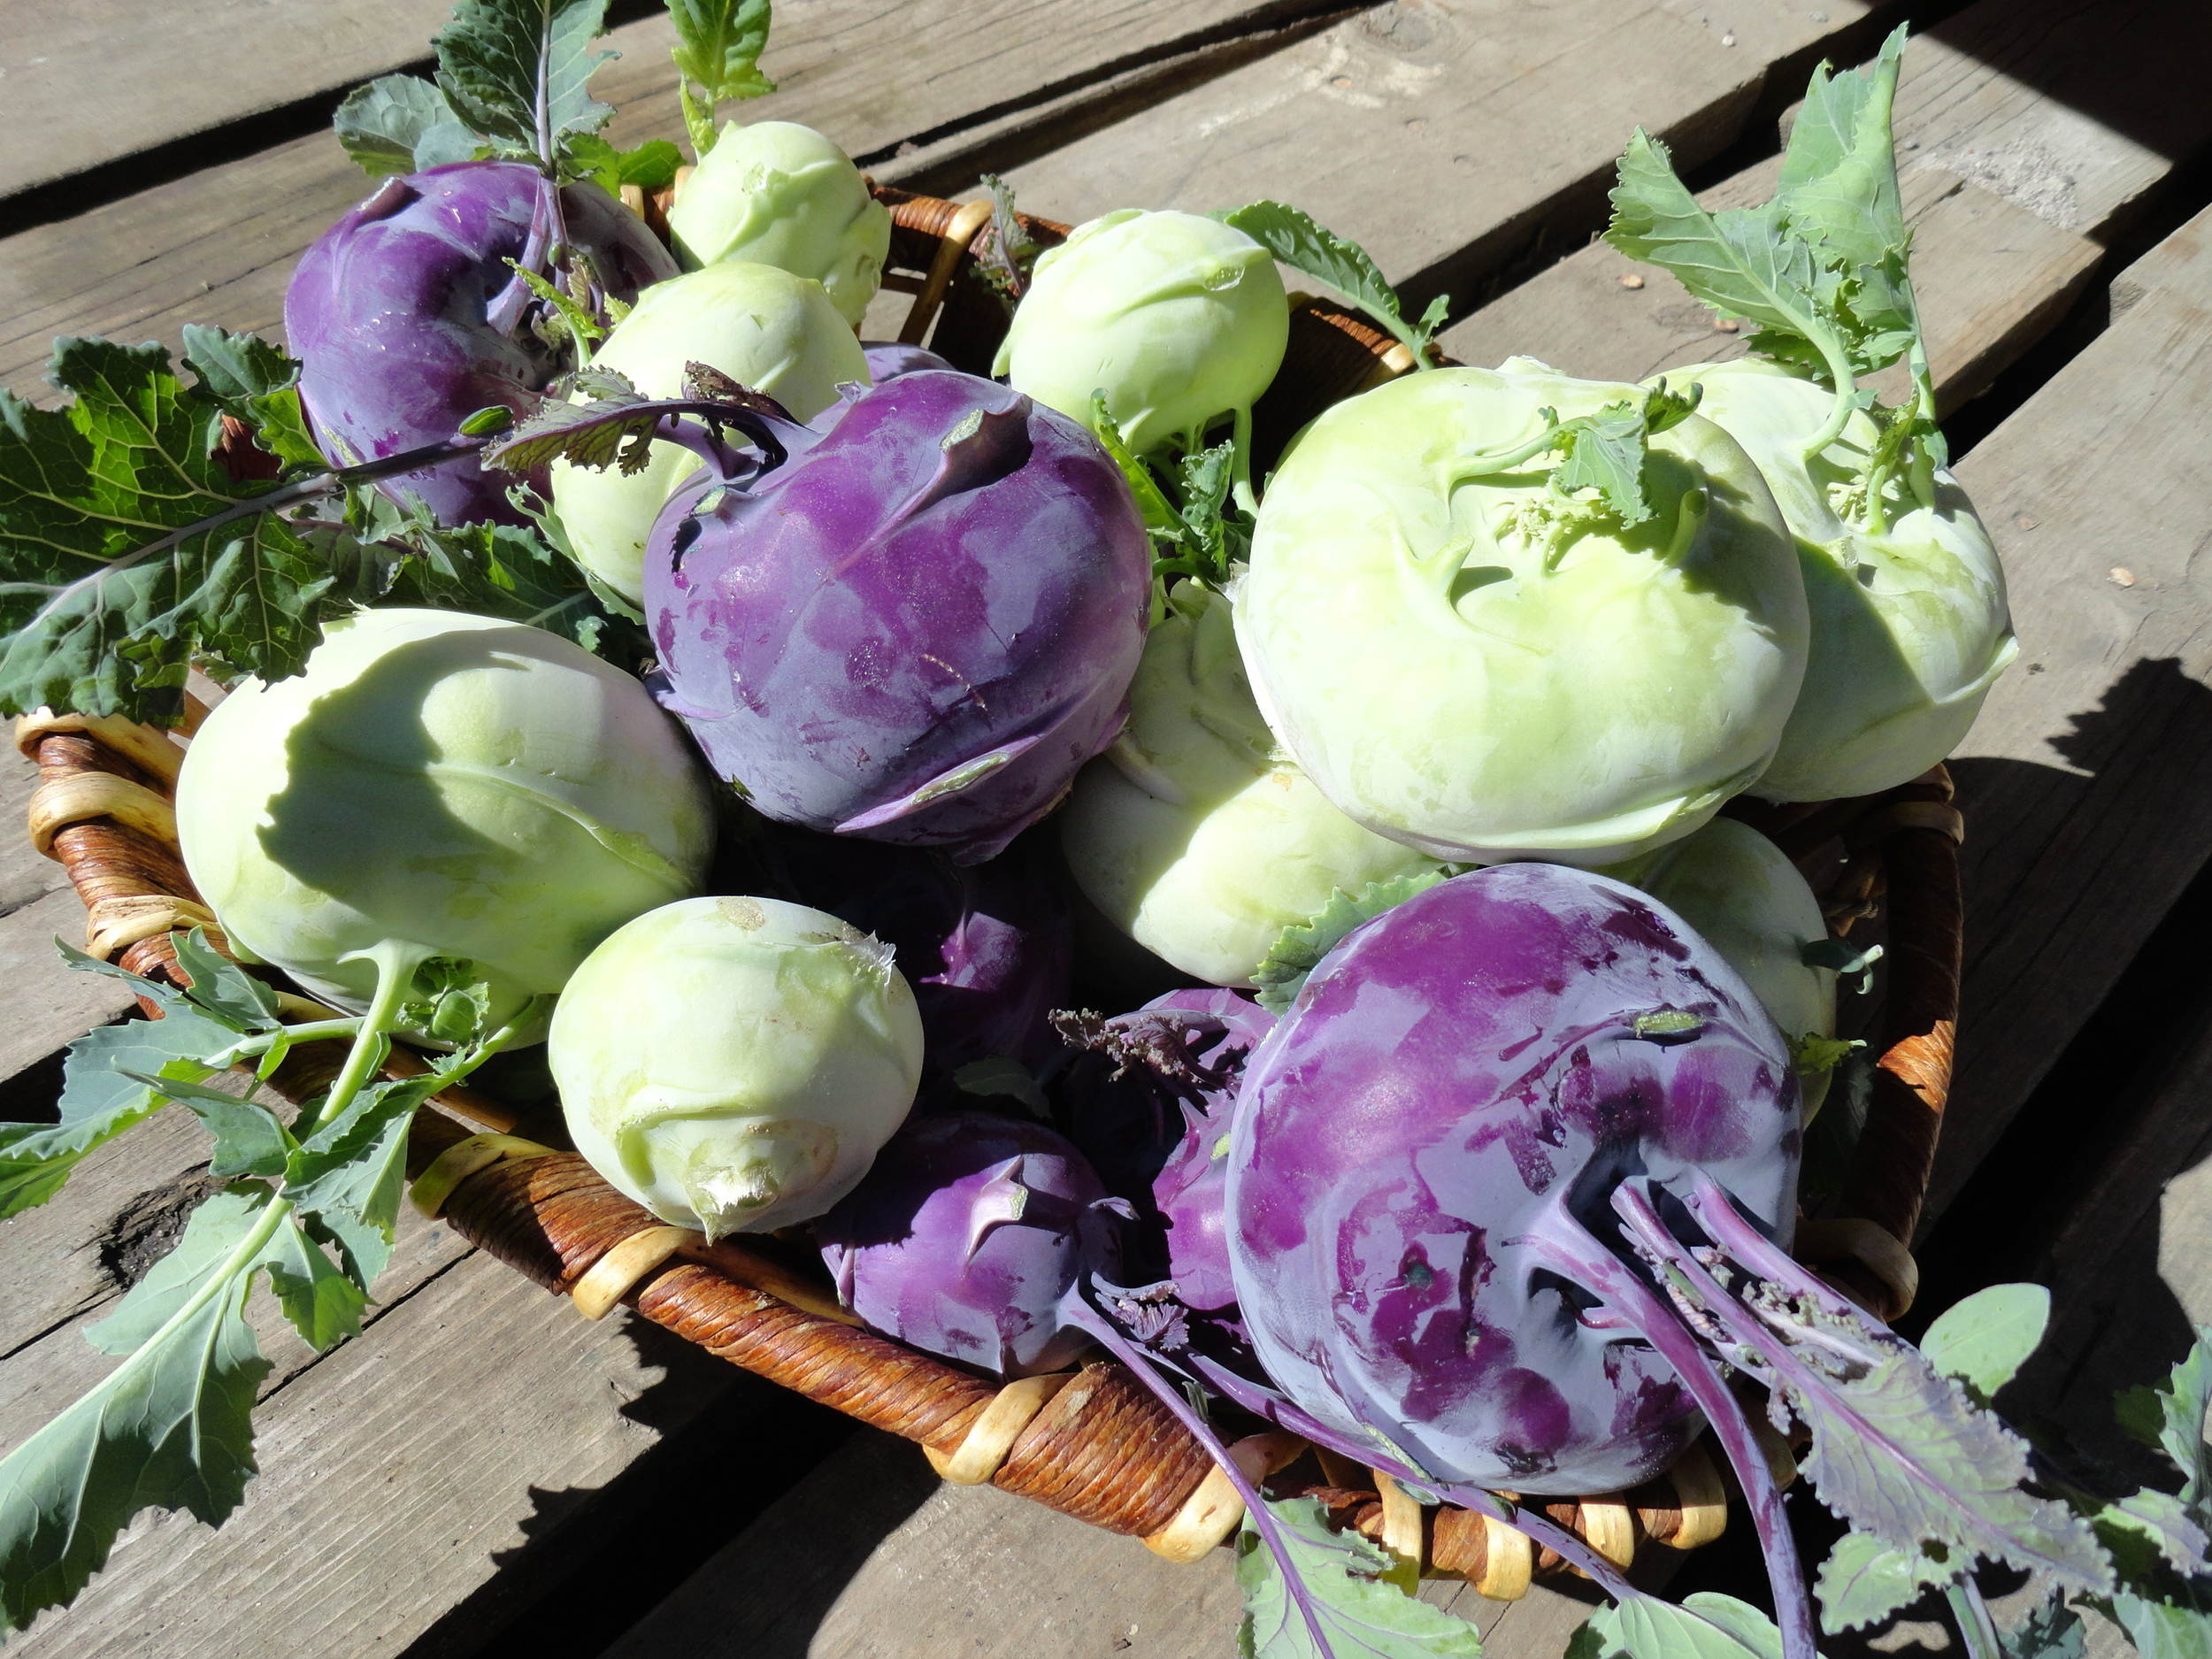 Purple and green kohlrabi in all different Sizes